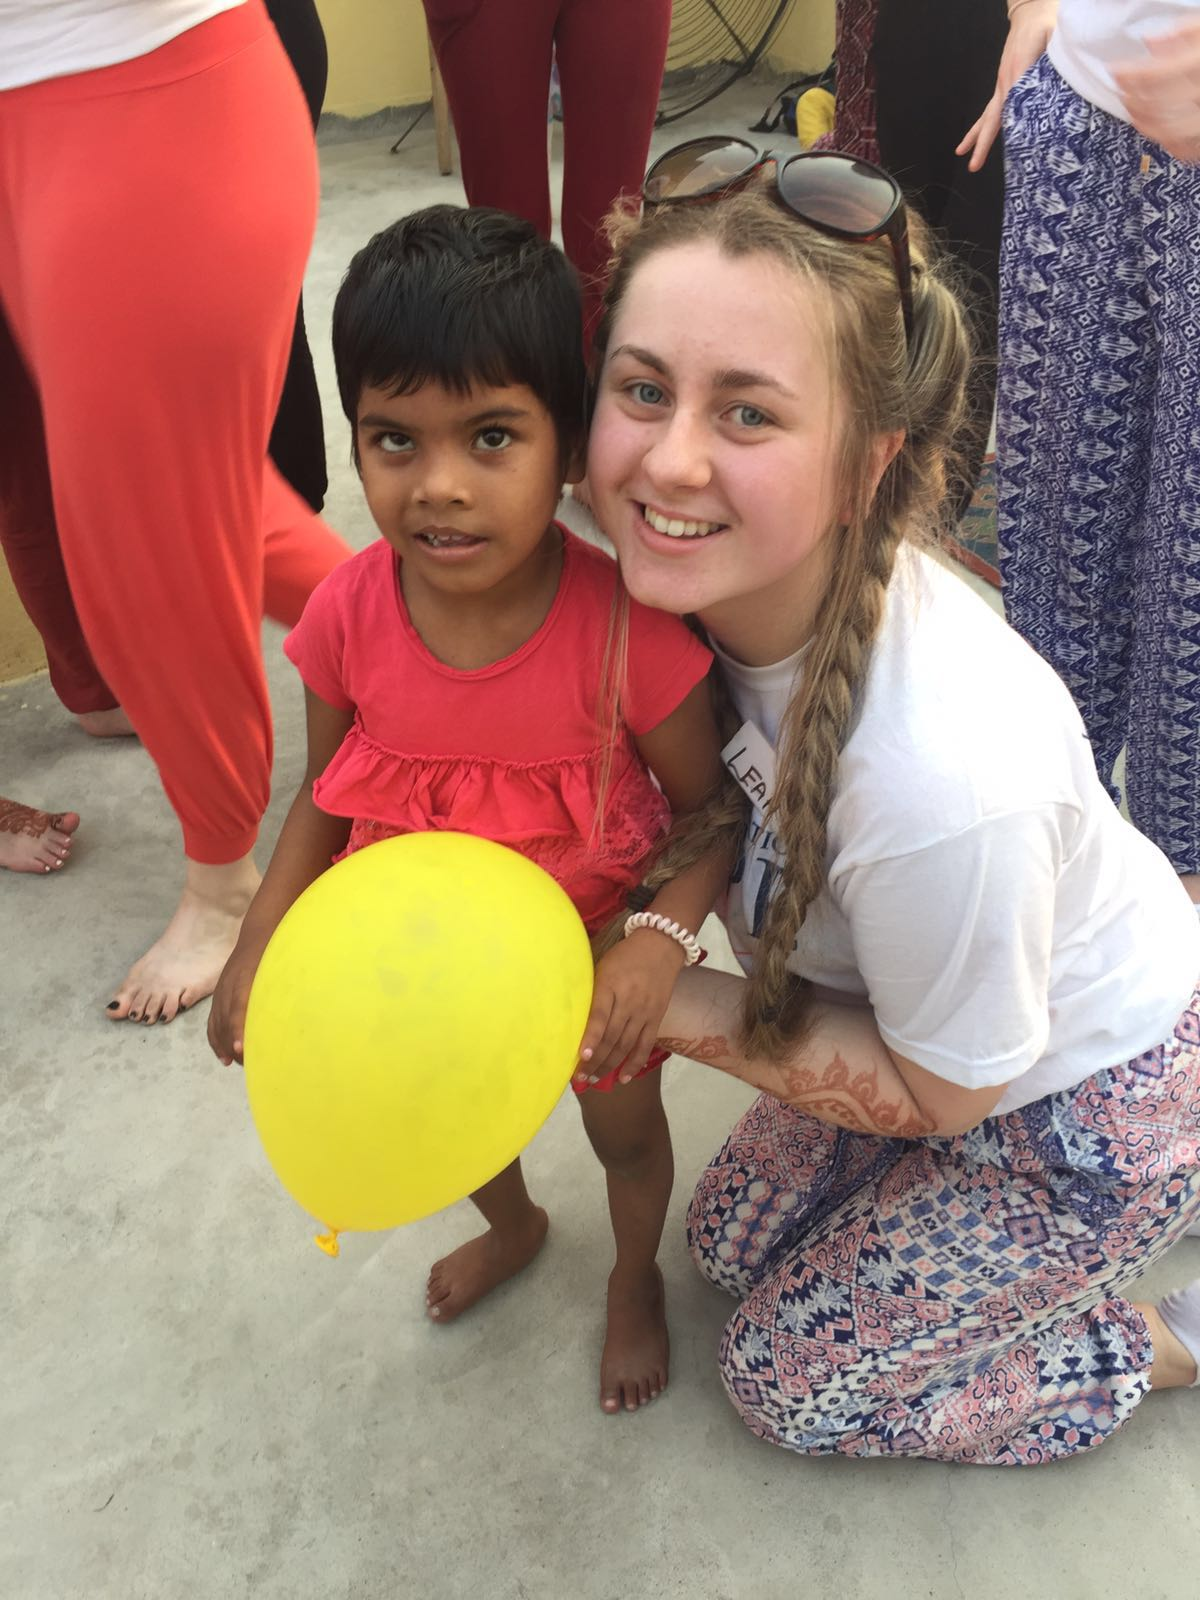 2016 April: Desmond College student with a new friend in Kolkata/Calcutta India